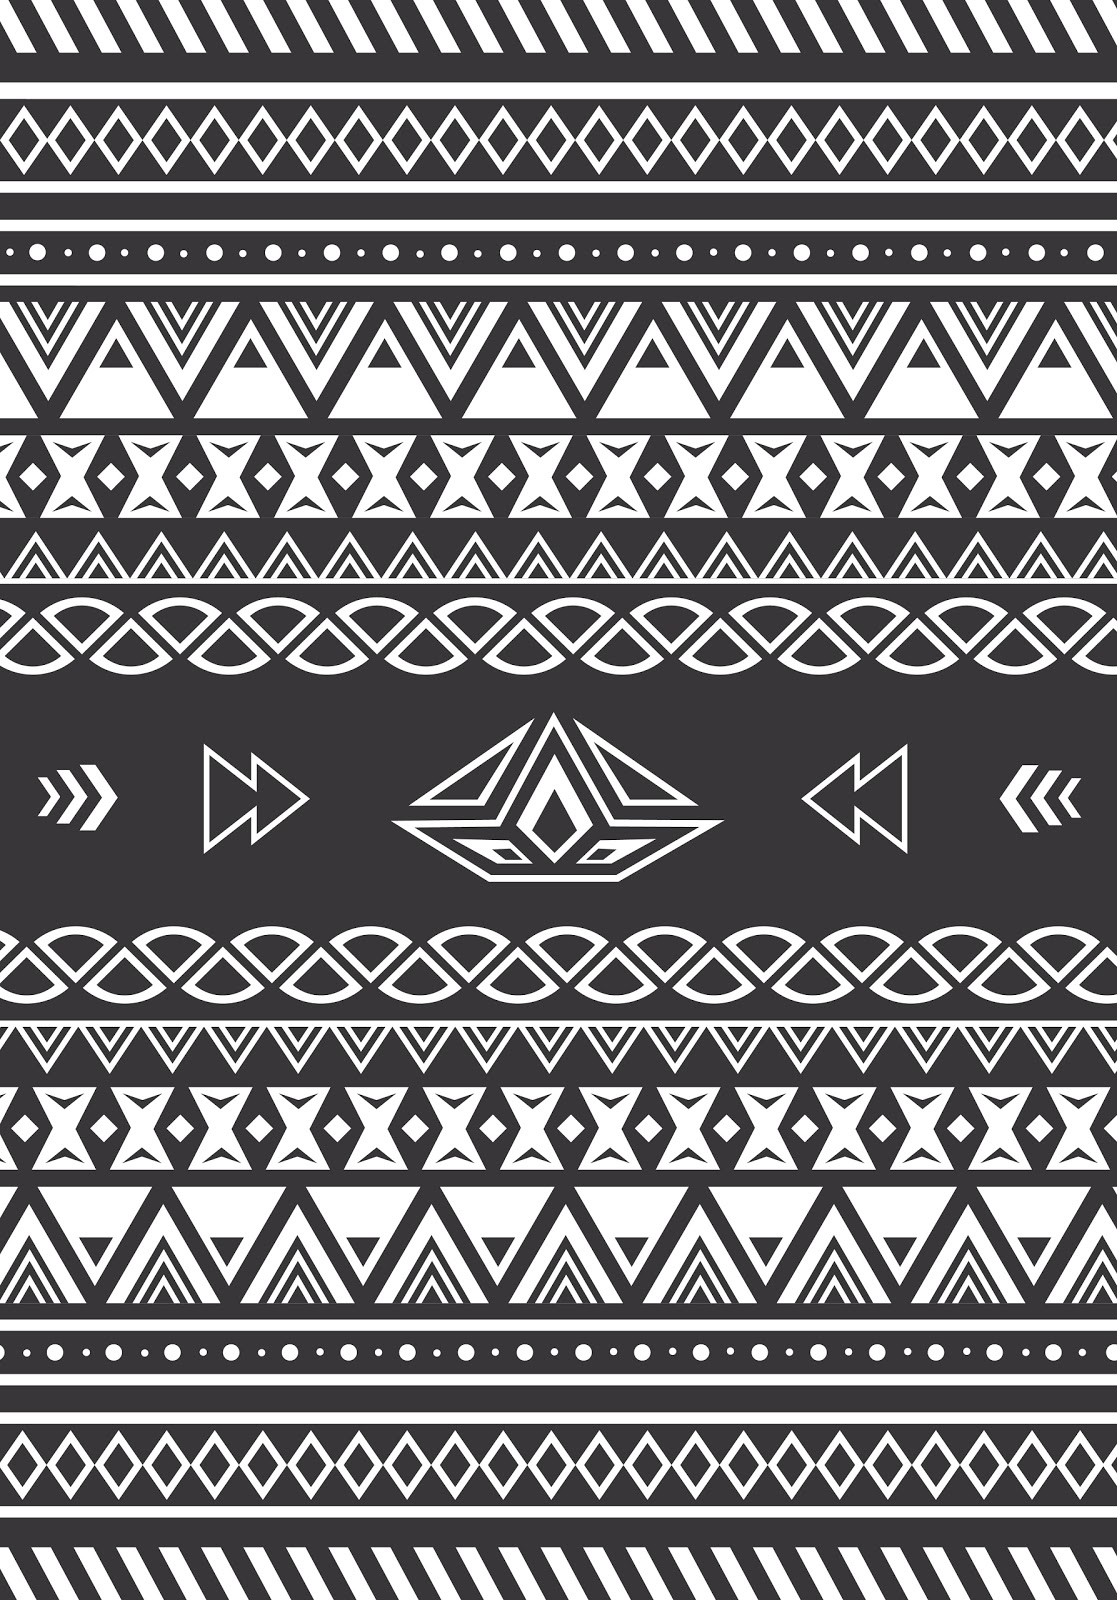 Seamless Black and White Aztec Digital Paper. Scrapbook Backgrounds. Aztec patterns, tribal backgrounds, native, grey. Commercial Use, Download Aztec Digital Paper.